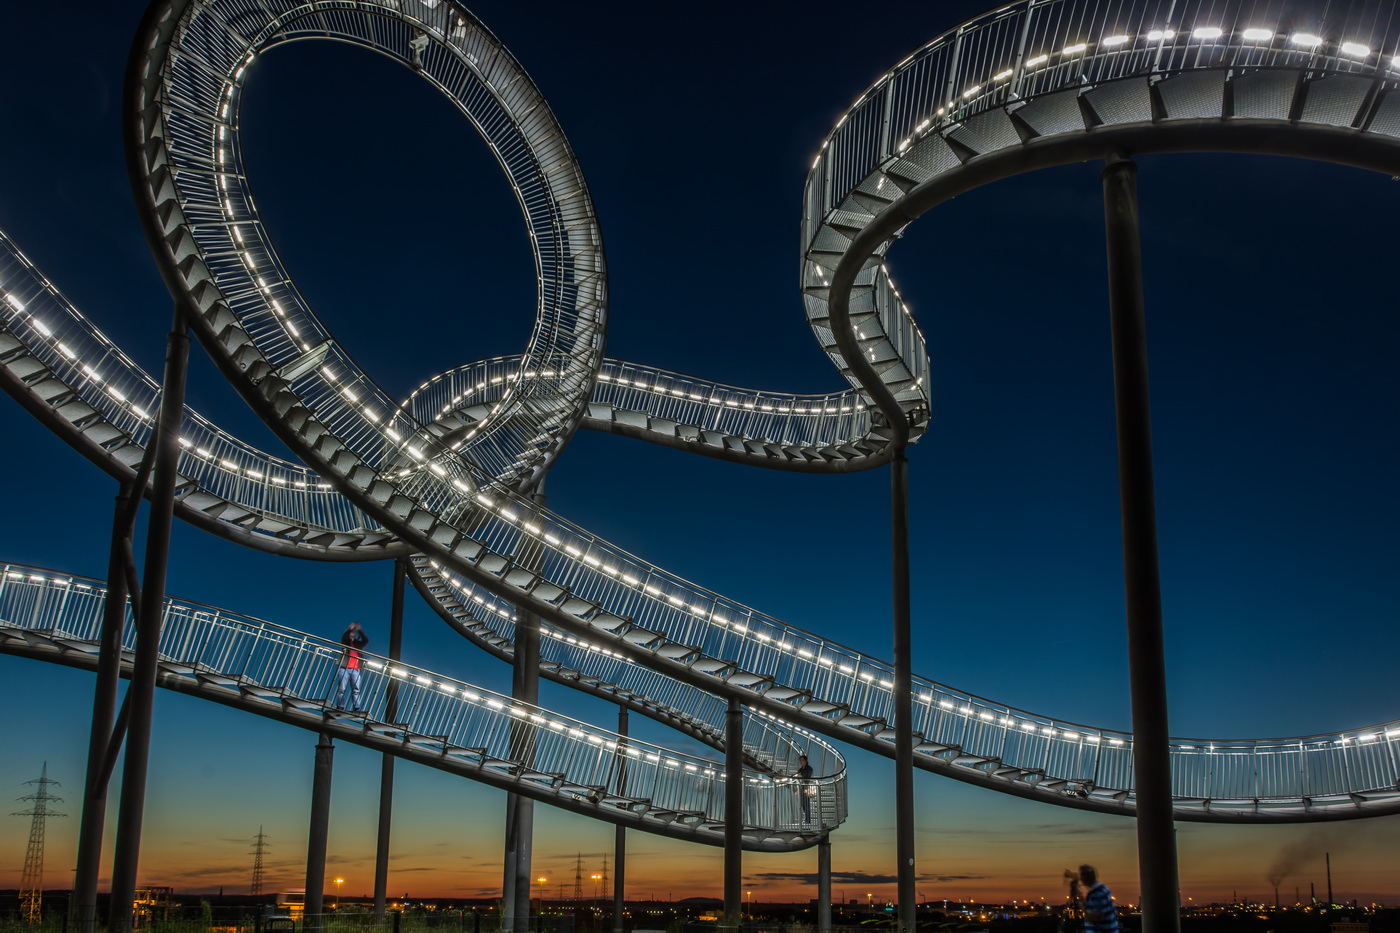 Tiger & Turtle by night (3)